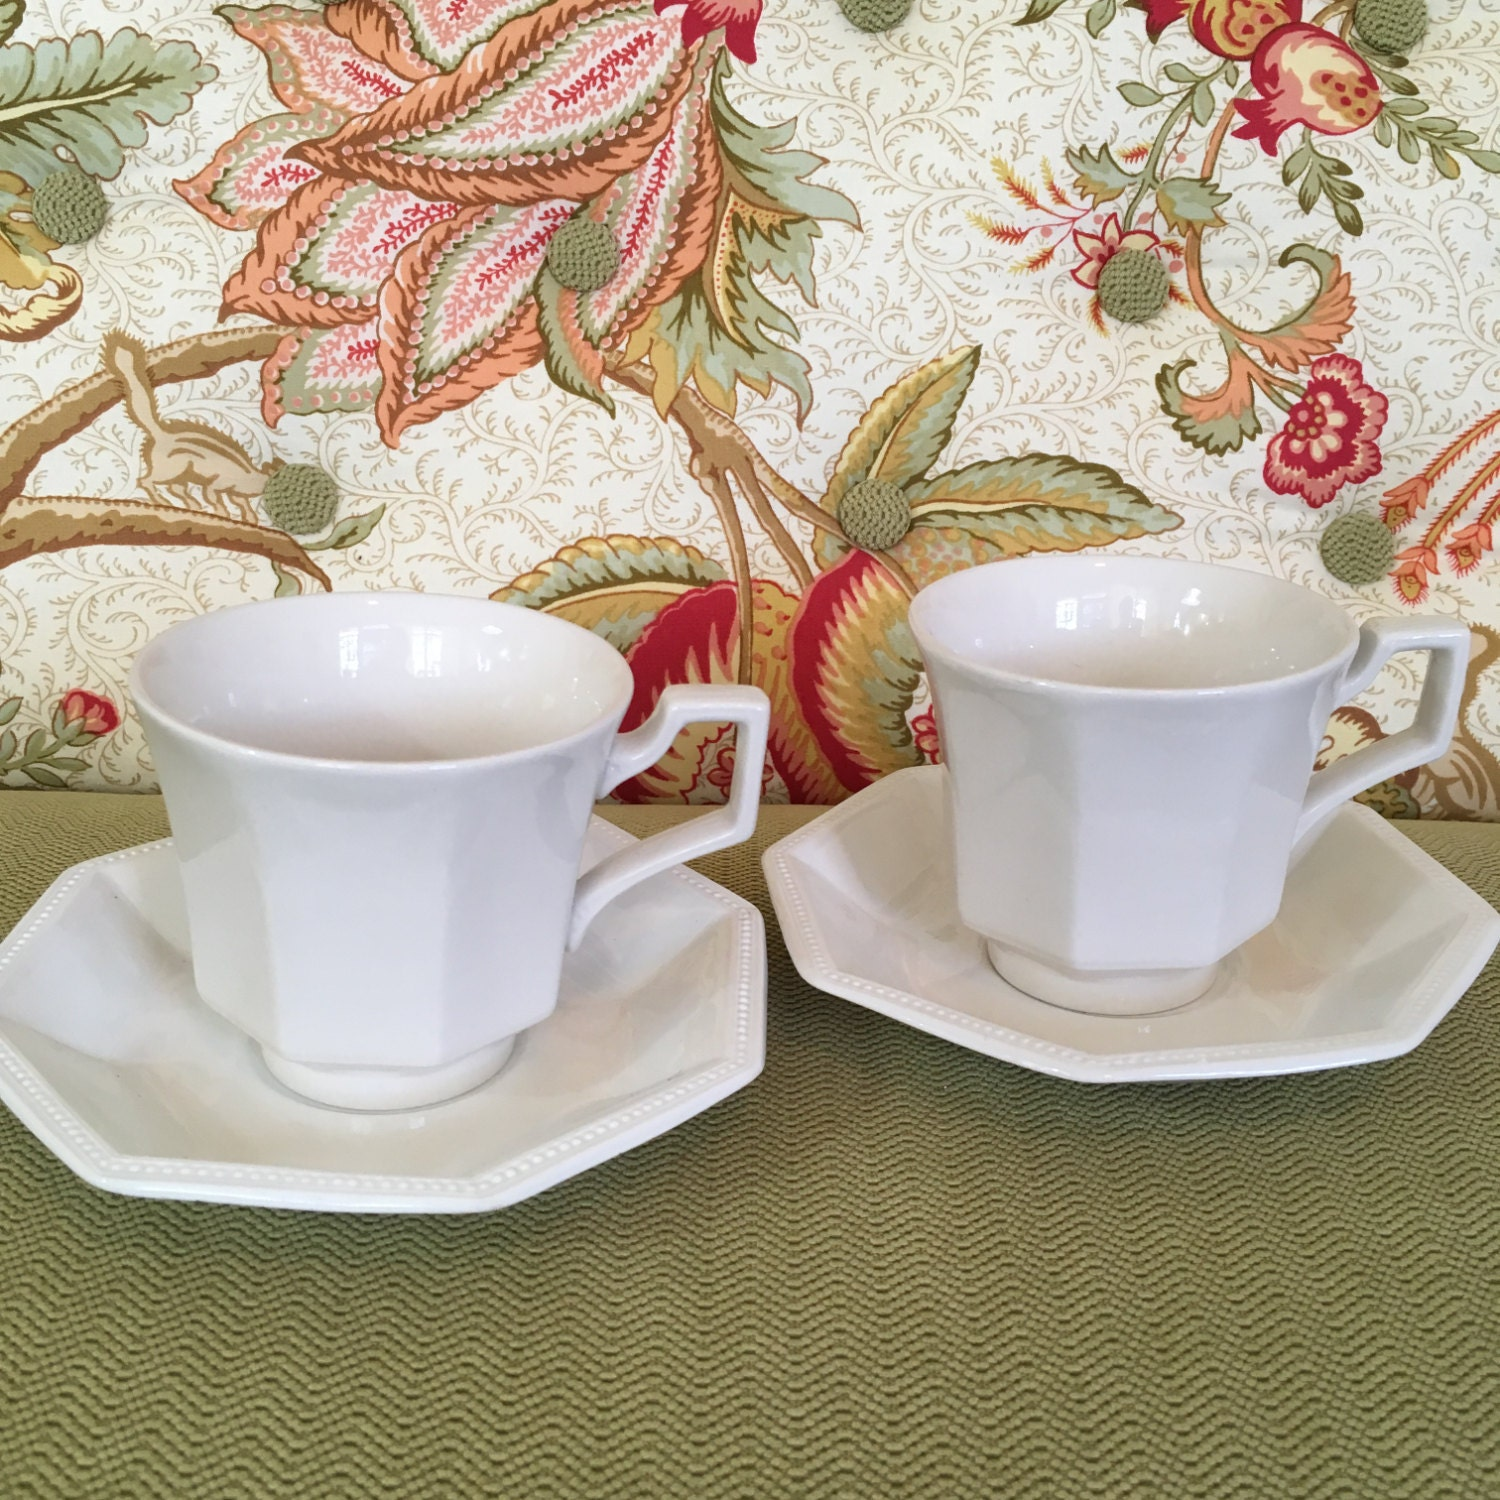 Set/2 Johnson Brothers Heritage White Cups and Saucers